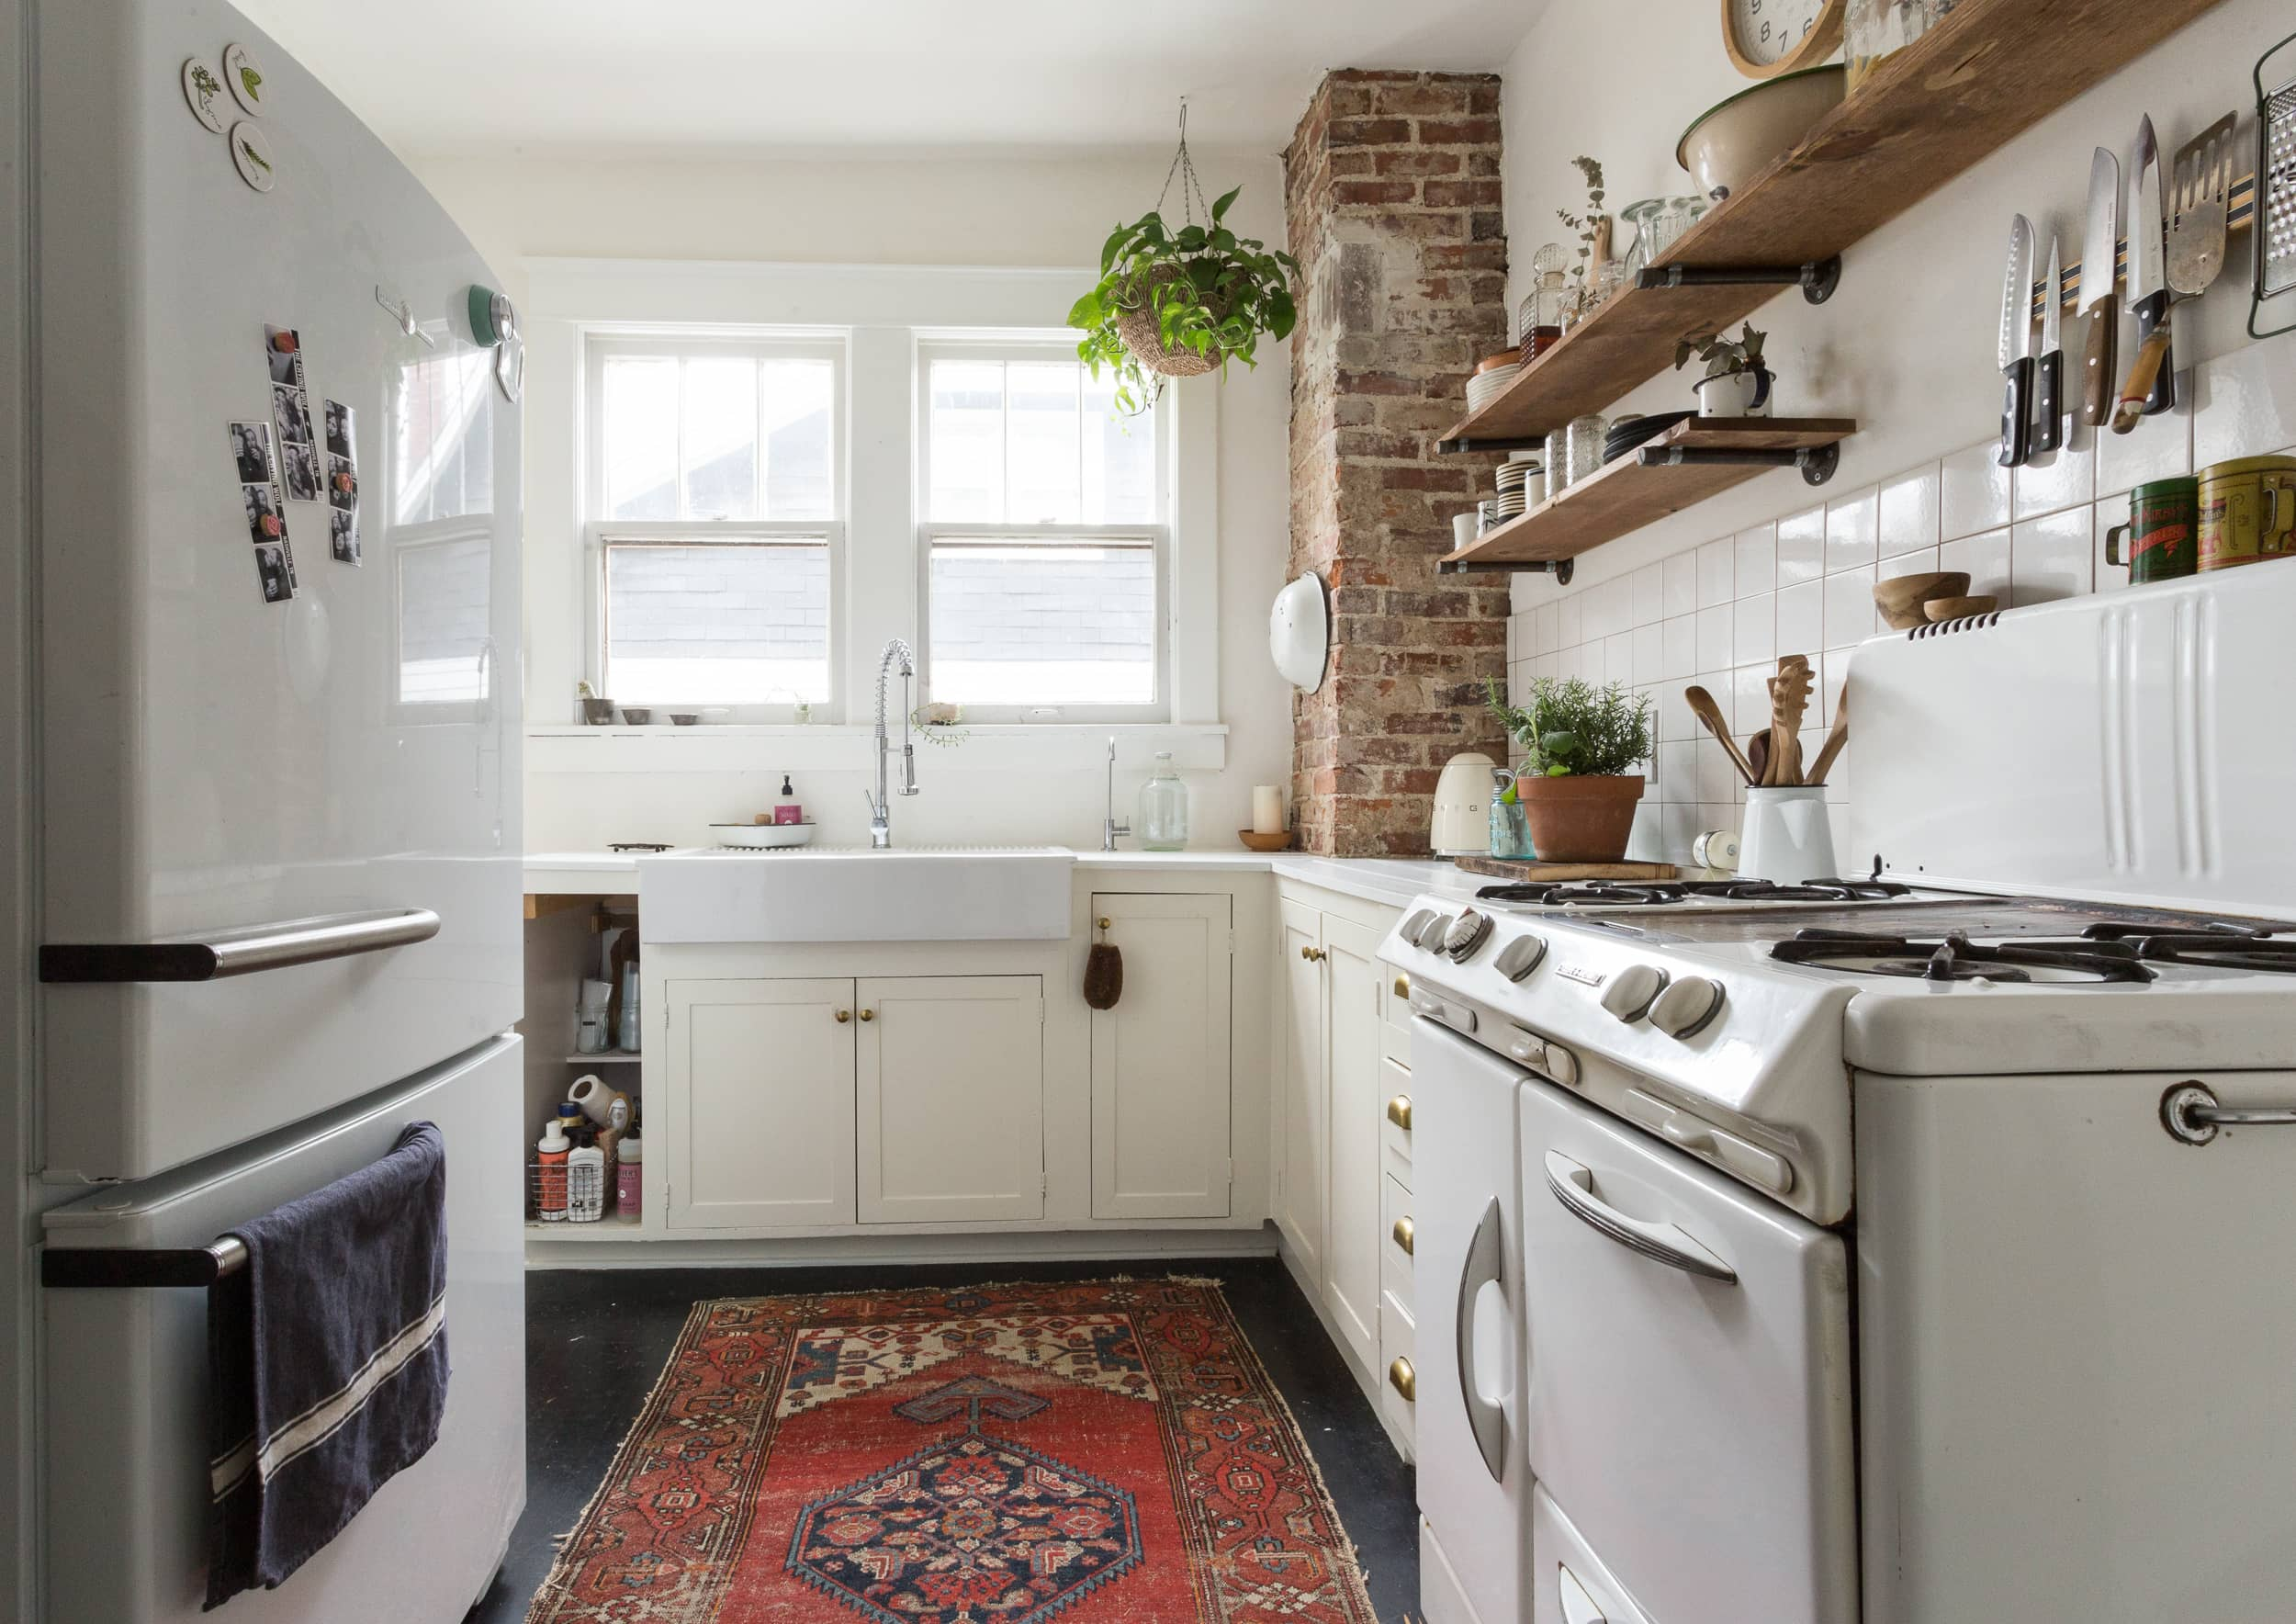 4 Things To Consider When Choosing A Beautiful Yet Practical Rug For